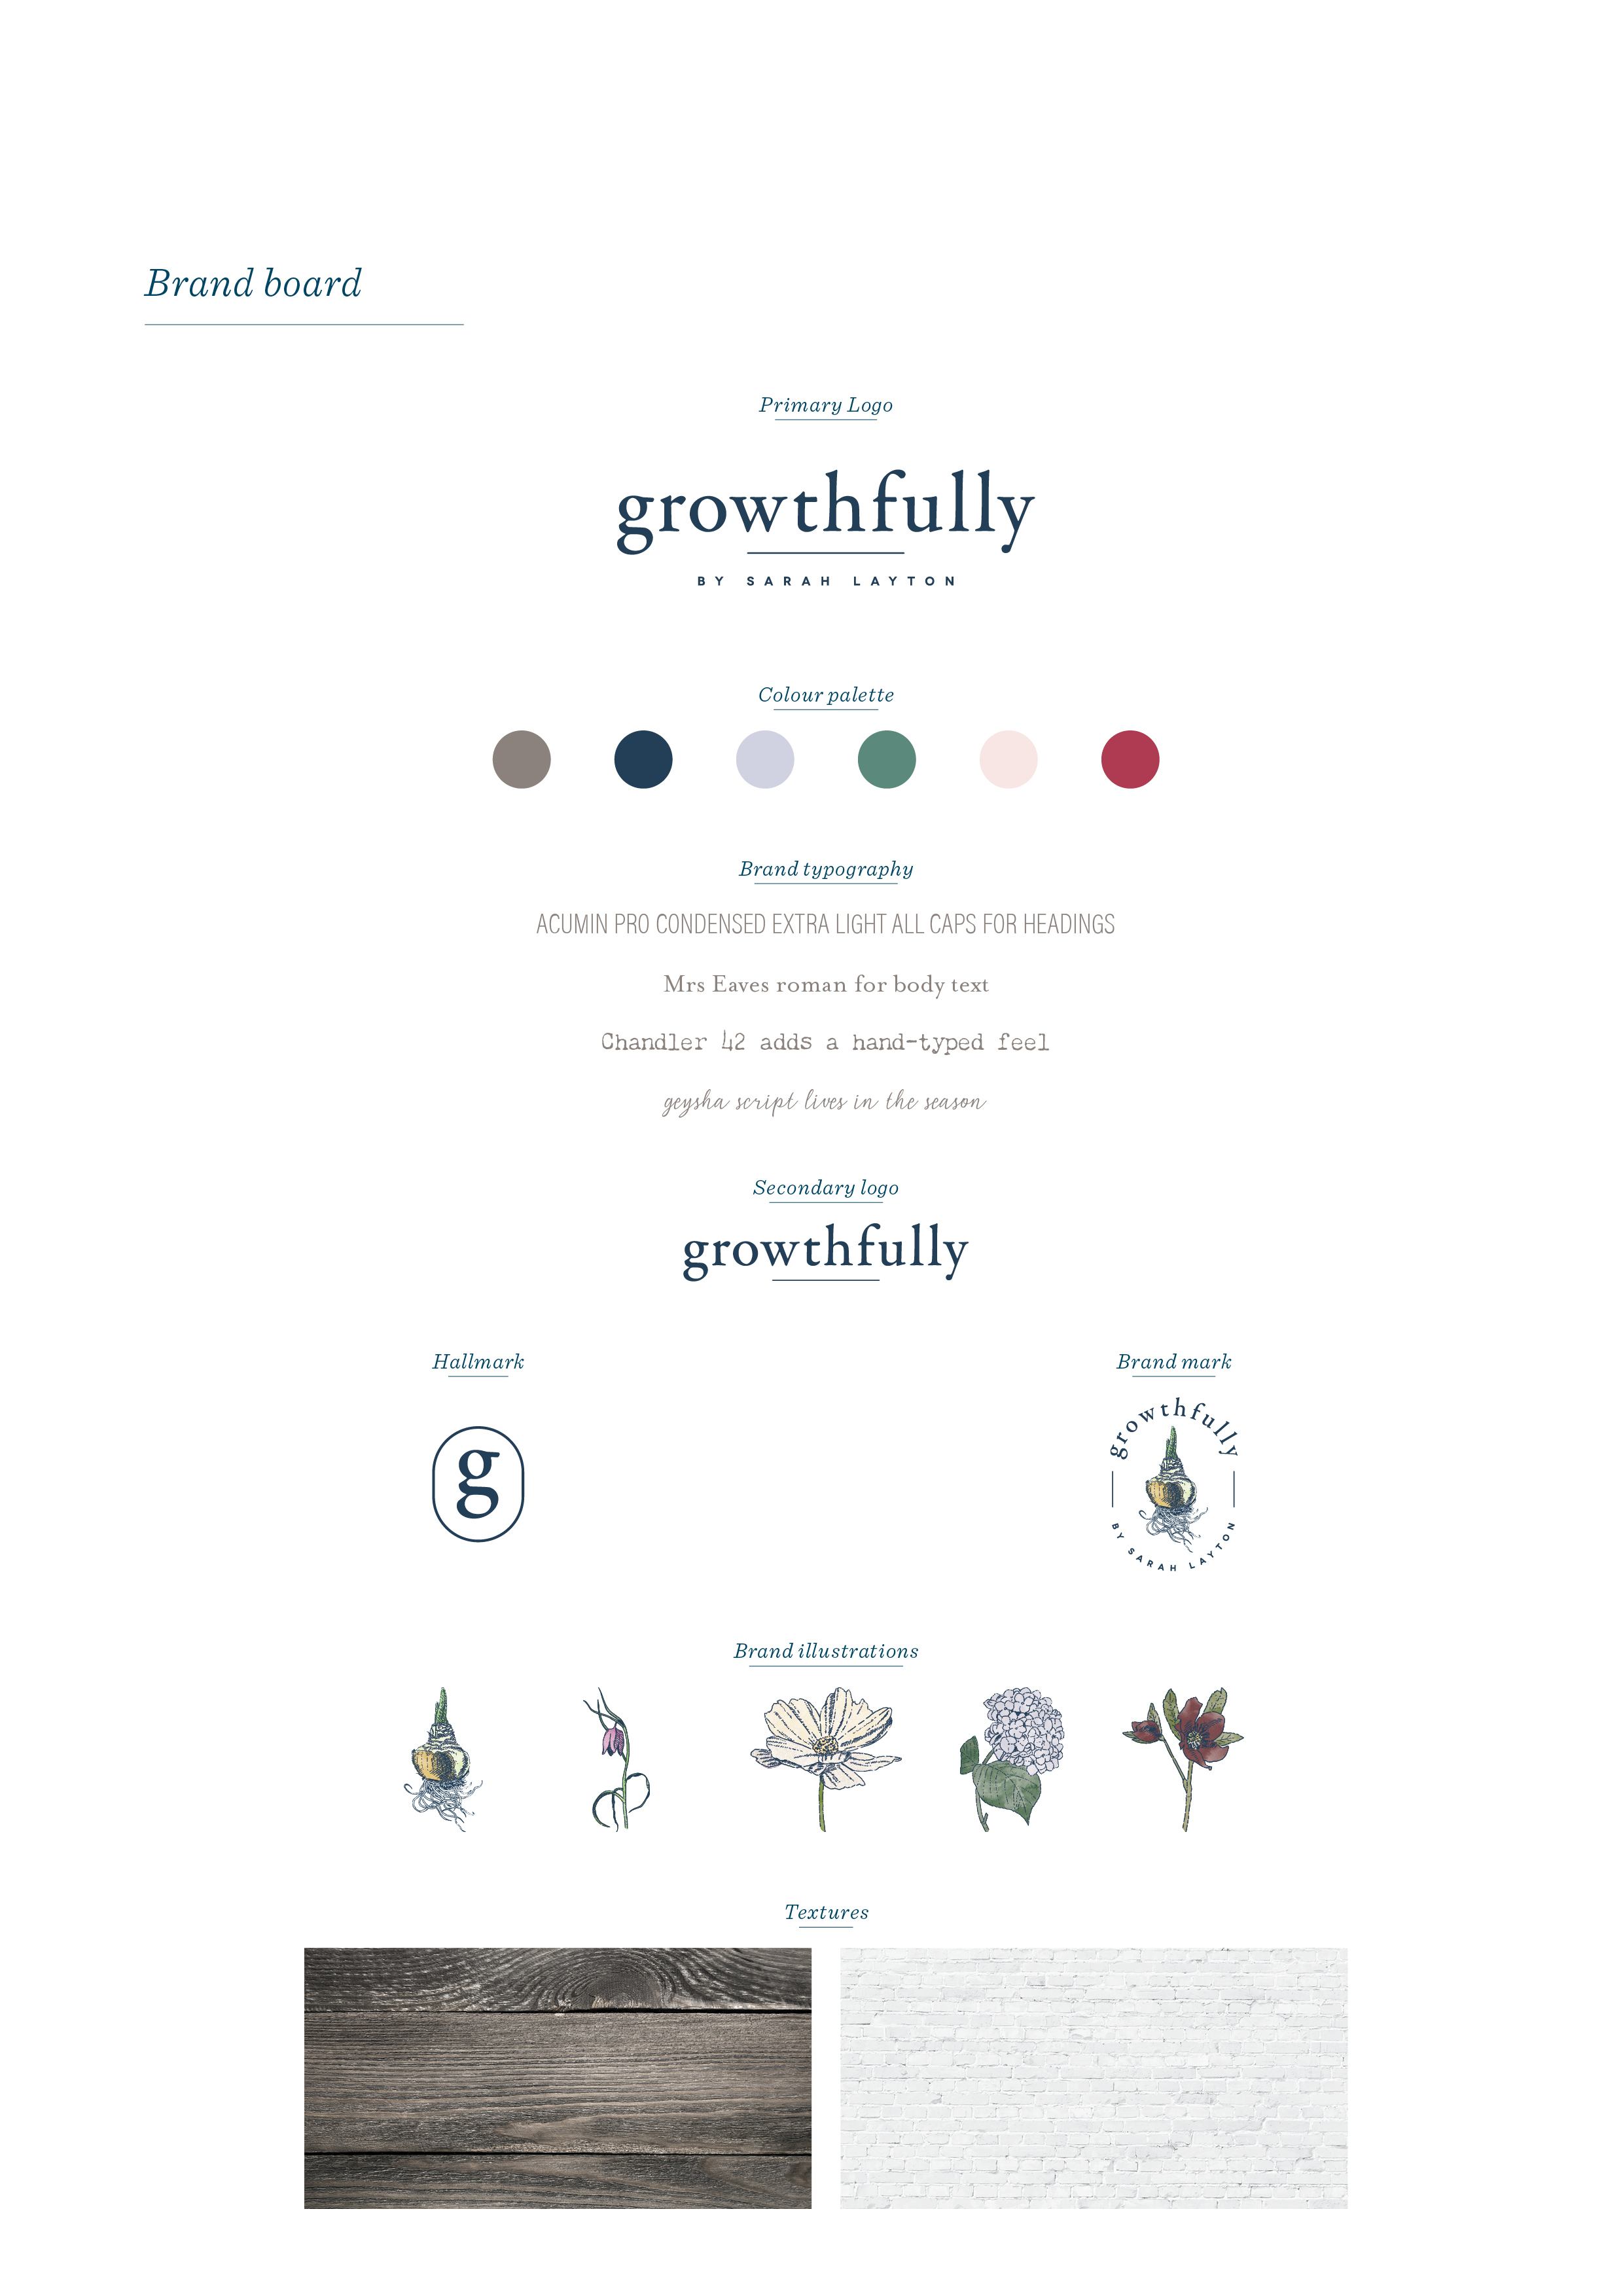 Growthfully brand board, brand styling and logo design by Ditto Creative, brand consultancy and brand designers in Kent